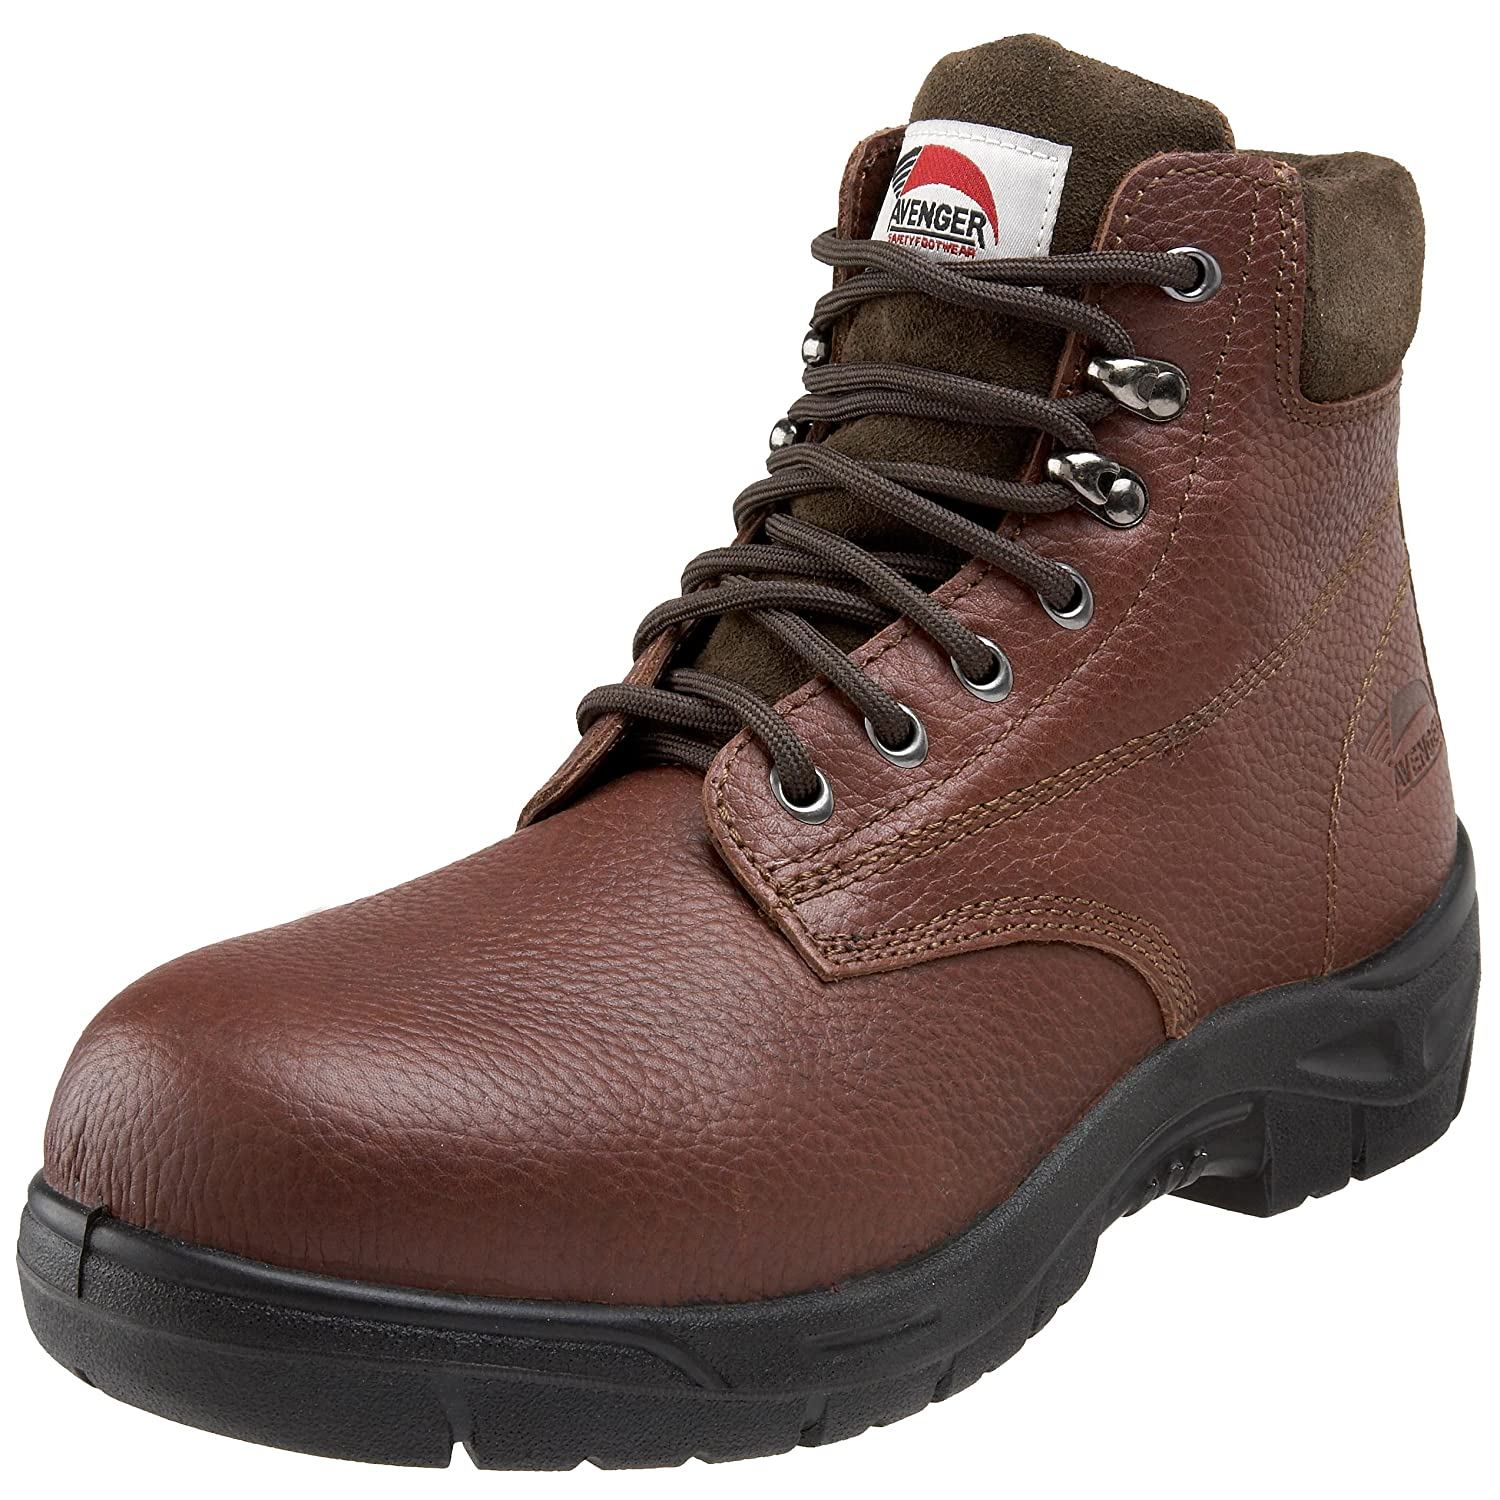 sports shoes e0bb3 8f03a Amazon.com  Avenger Safety Footwear Men s A7211 Steel Toe Boot  Shoes